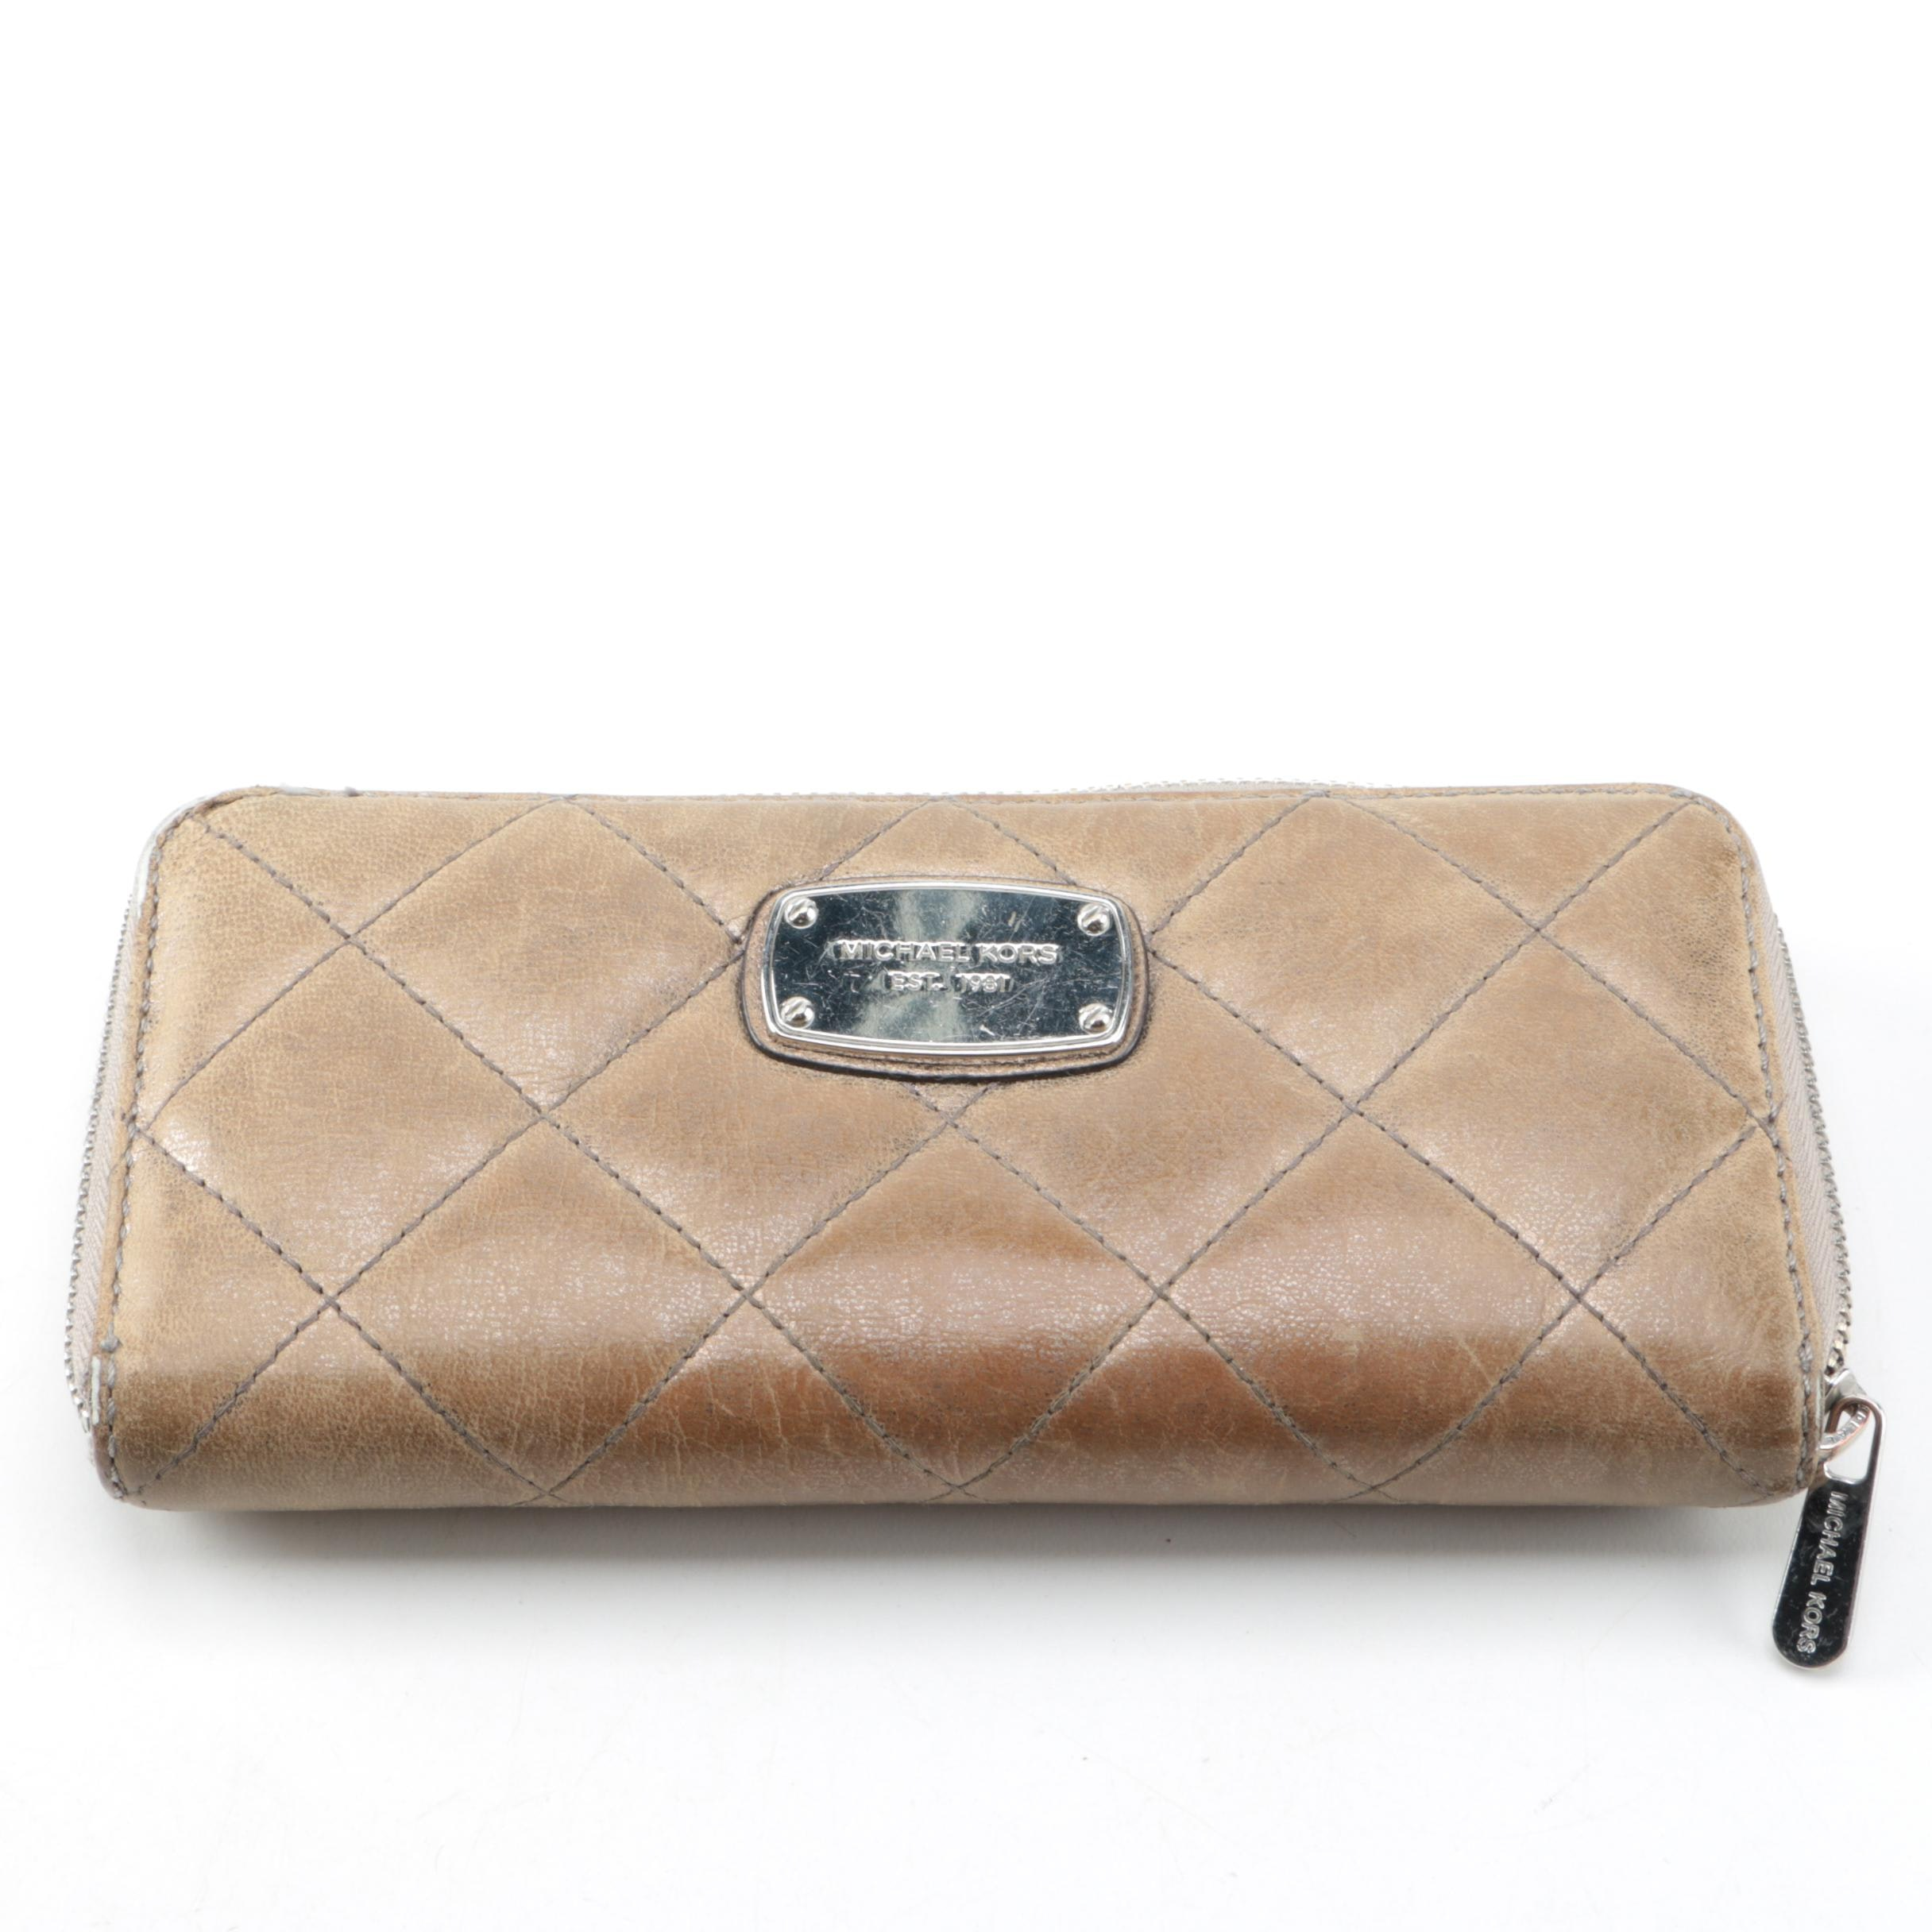 Michael Kors Quilted Leather Wallet